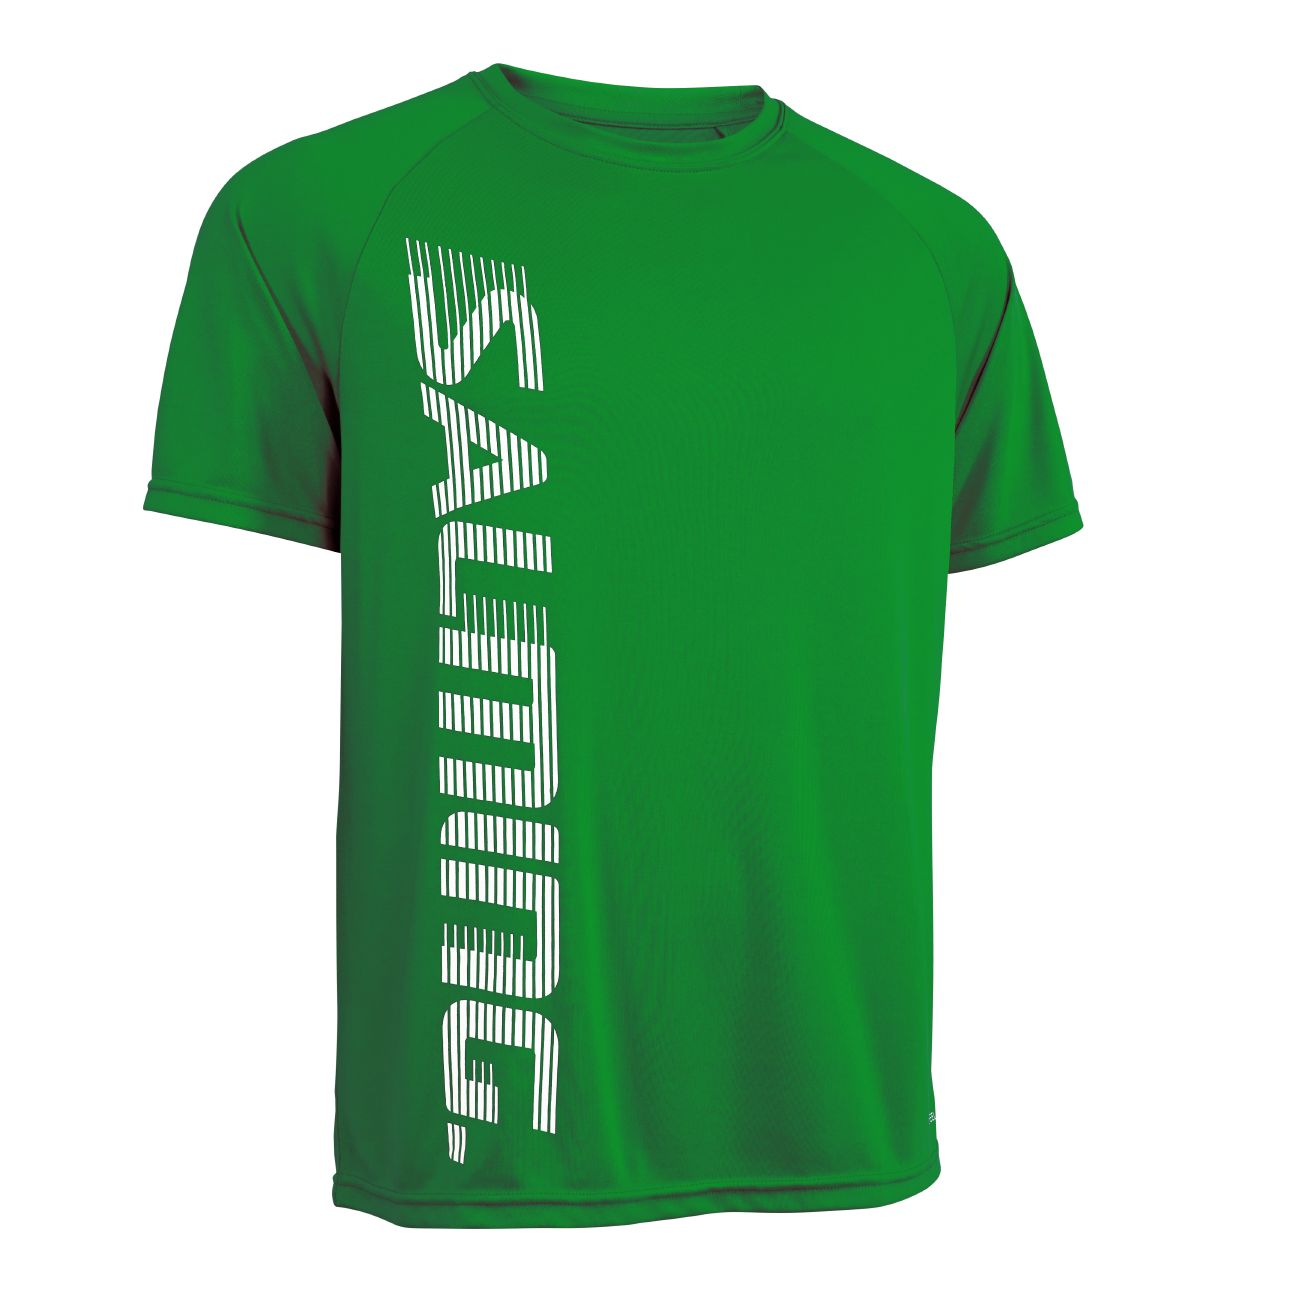 Salming Training Tee 2.0 Červená, M